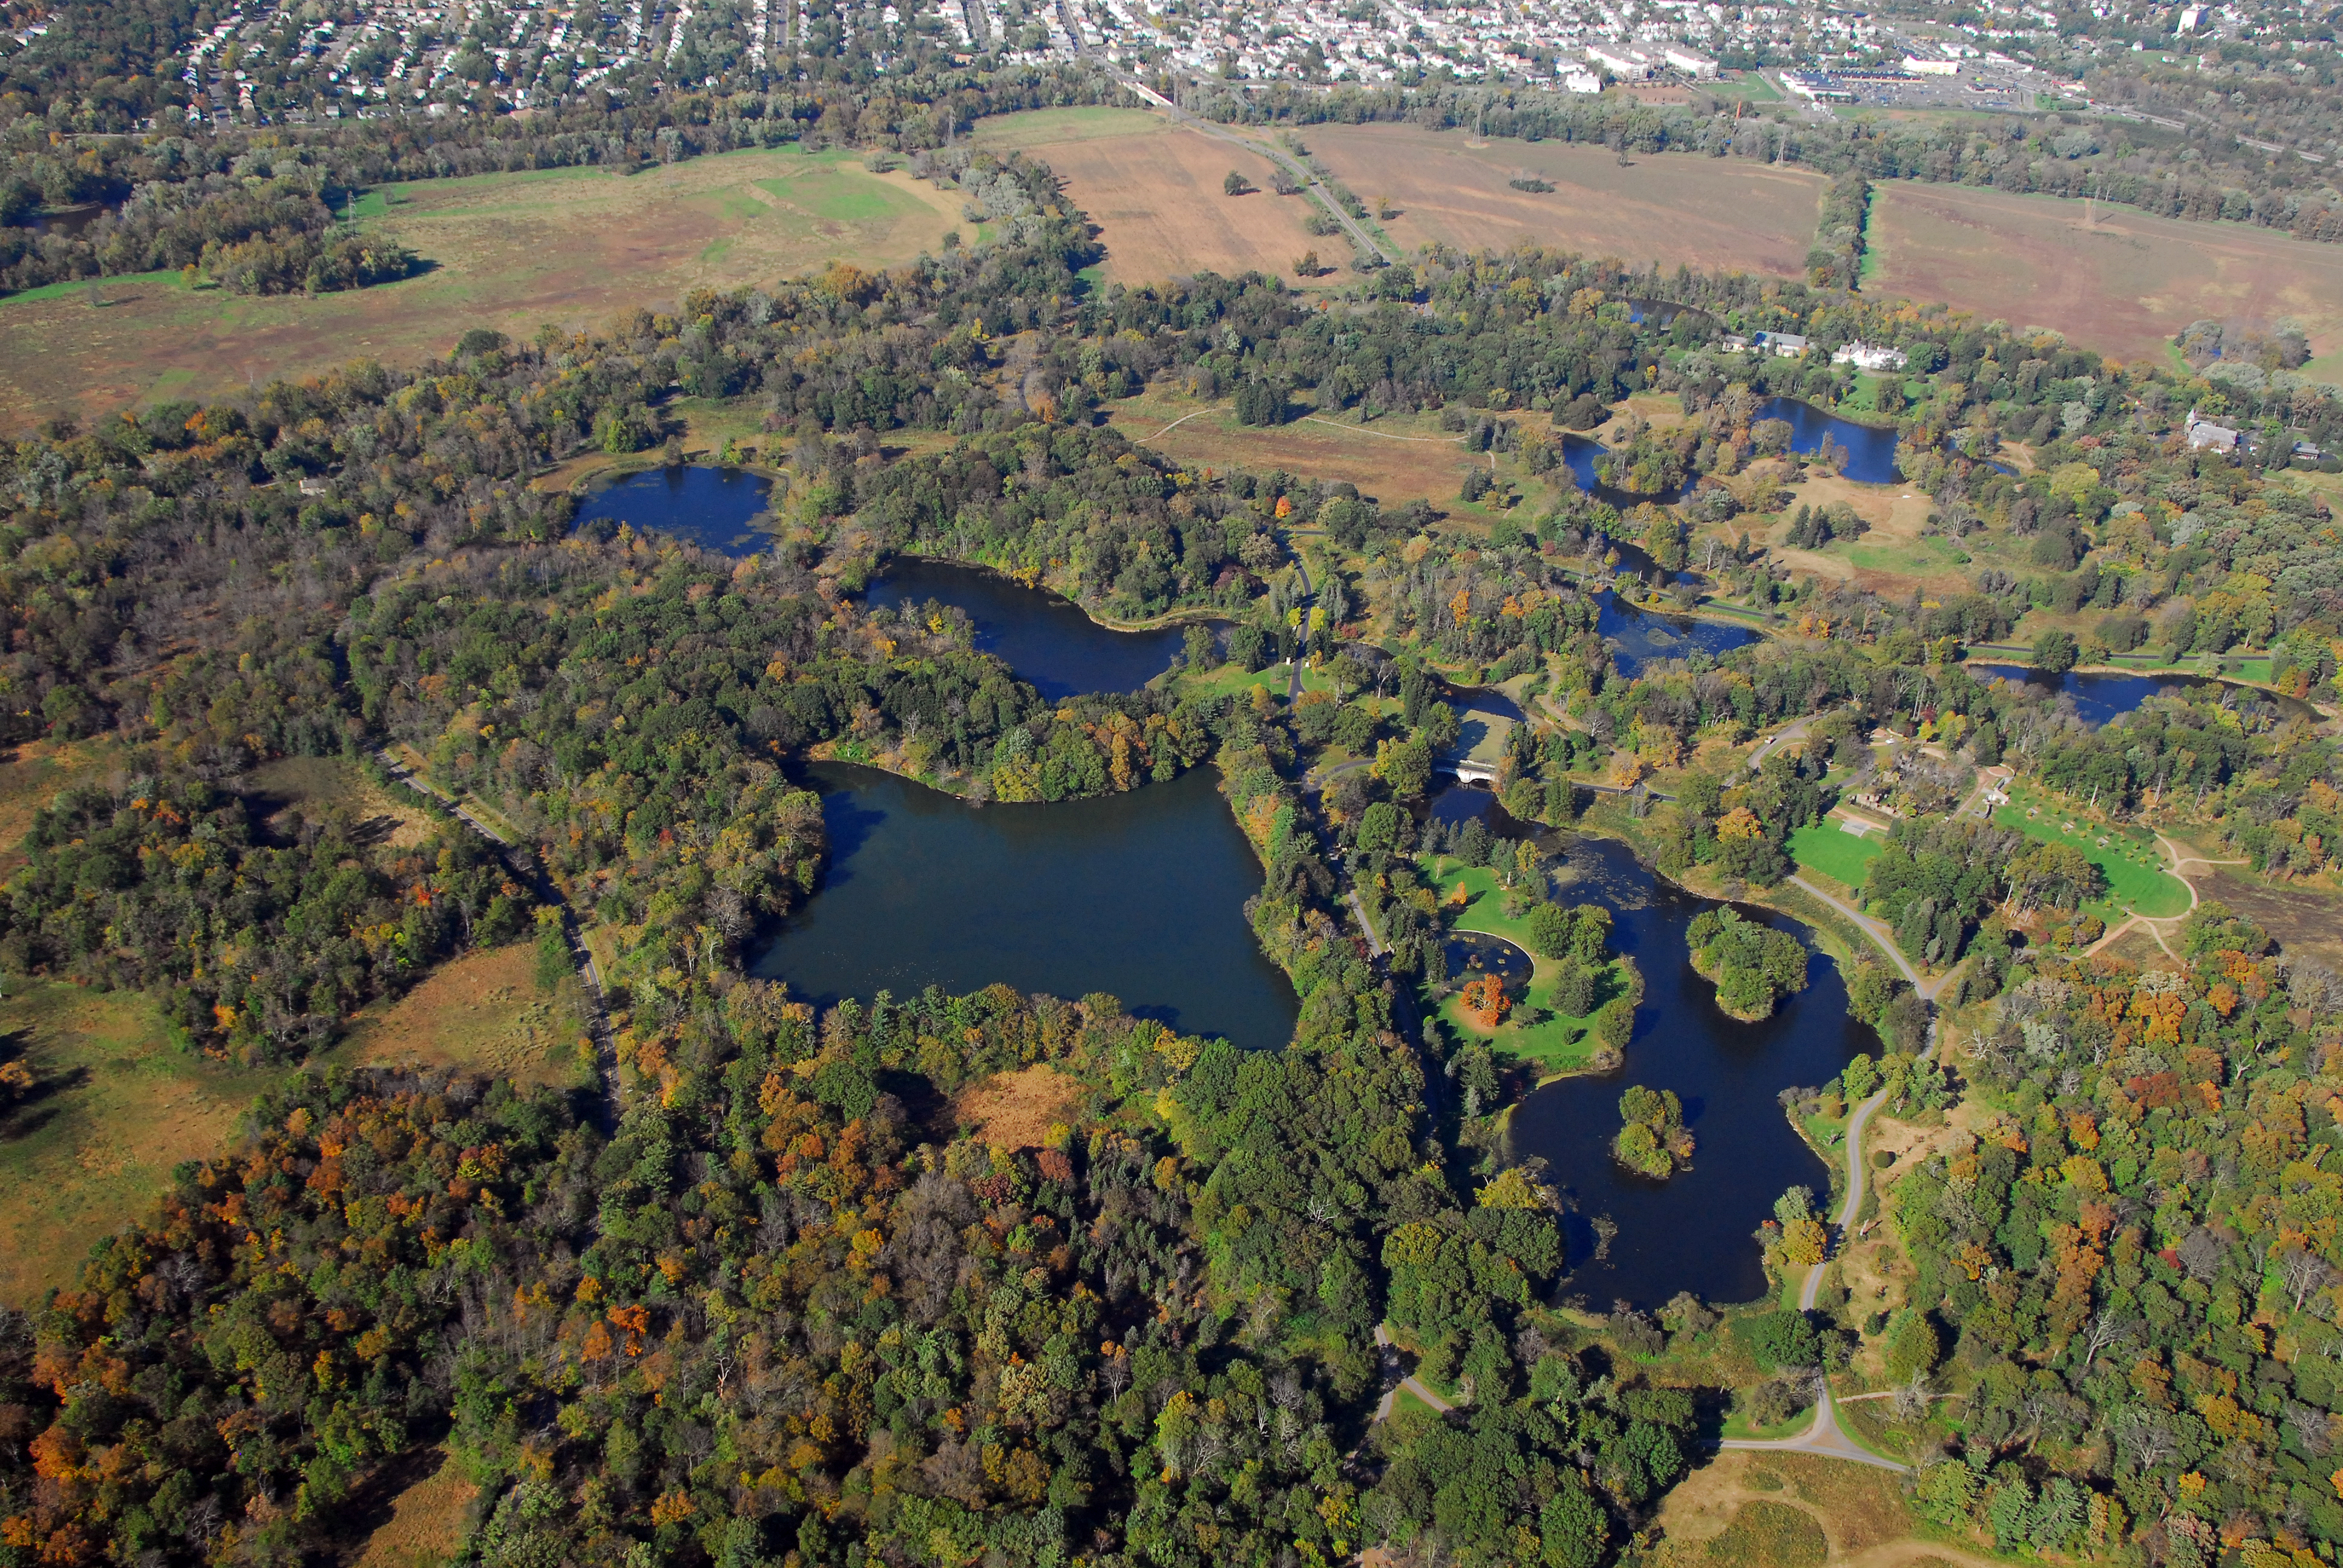 Duke farms from green to clean closed loop lake system for Closed loop gardening